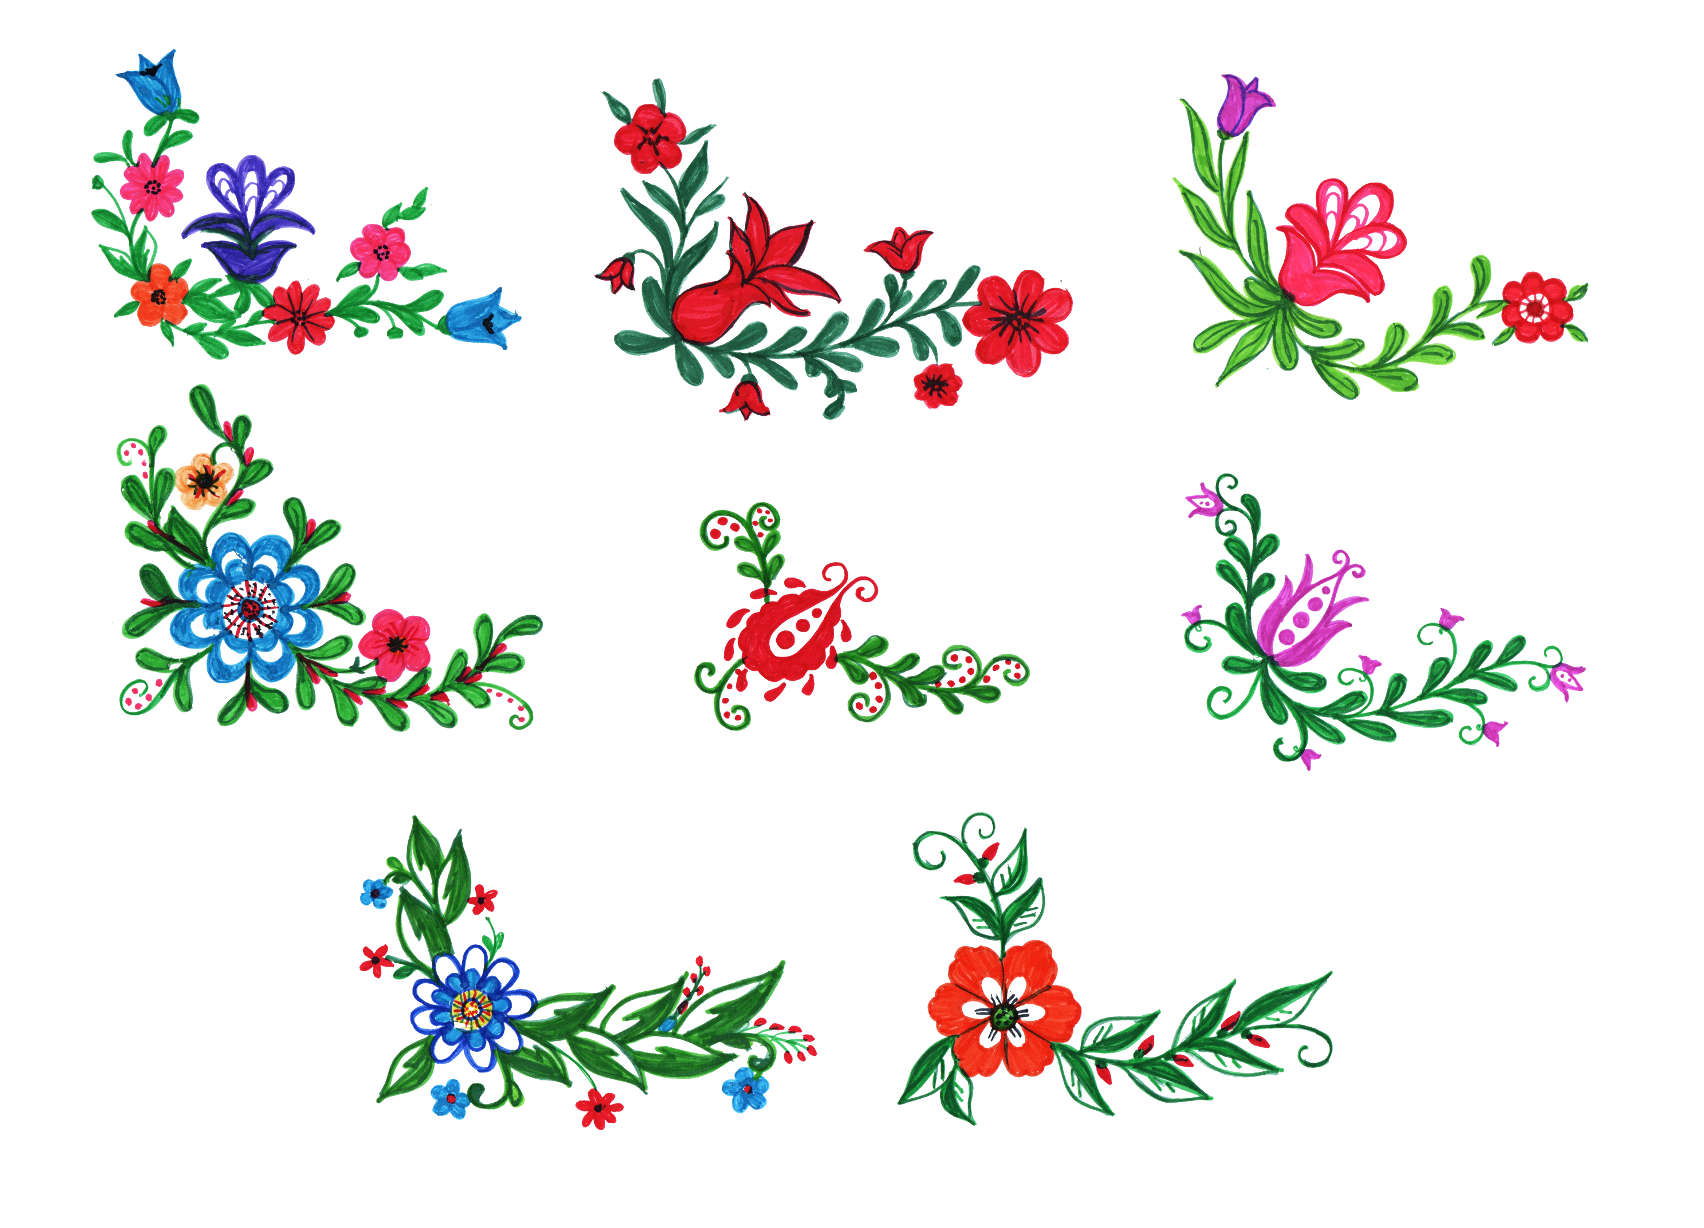 8 Colorful Flower Corner Png Transparent Vol 2 Onlygfx Com,Sample Technical Design Document Template